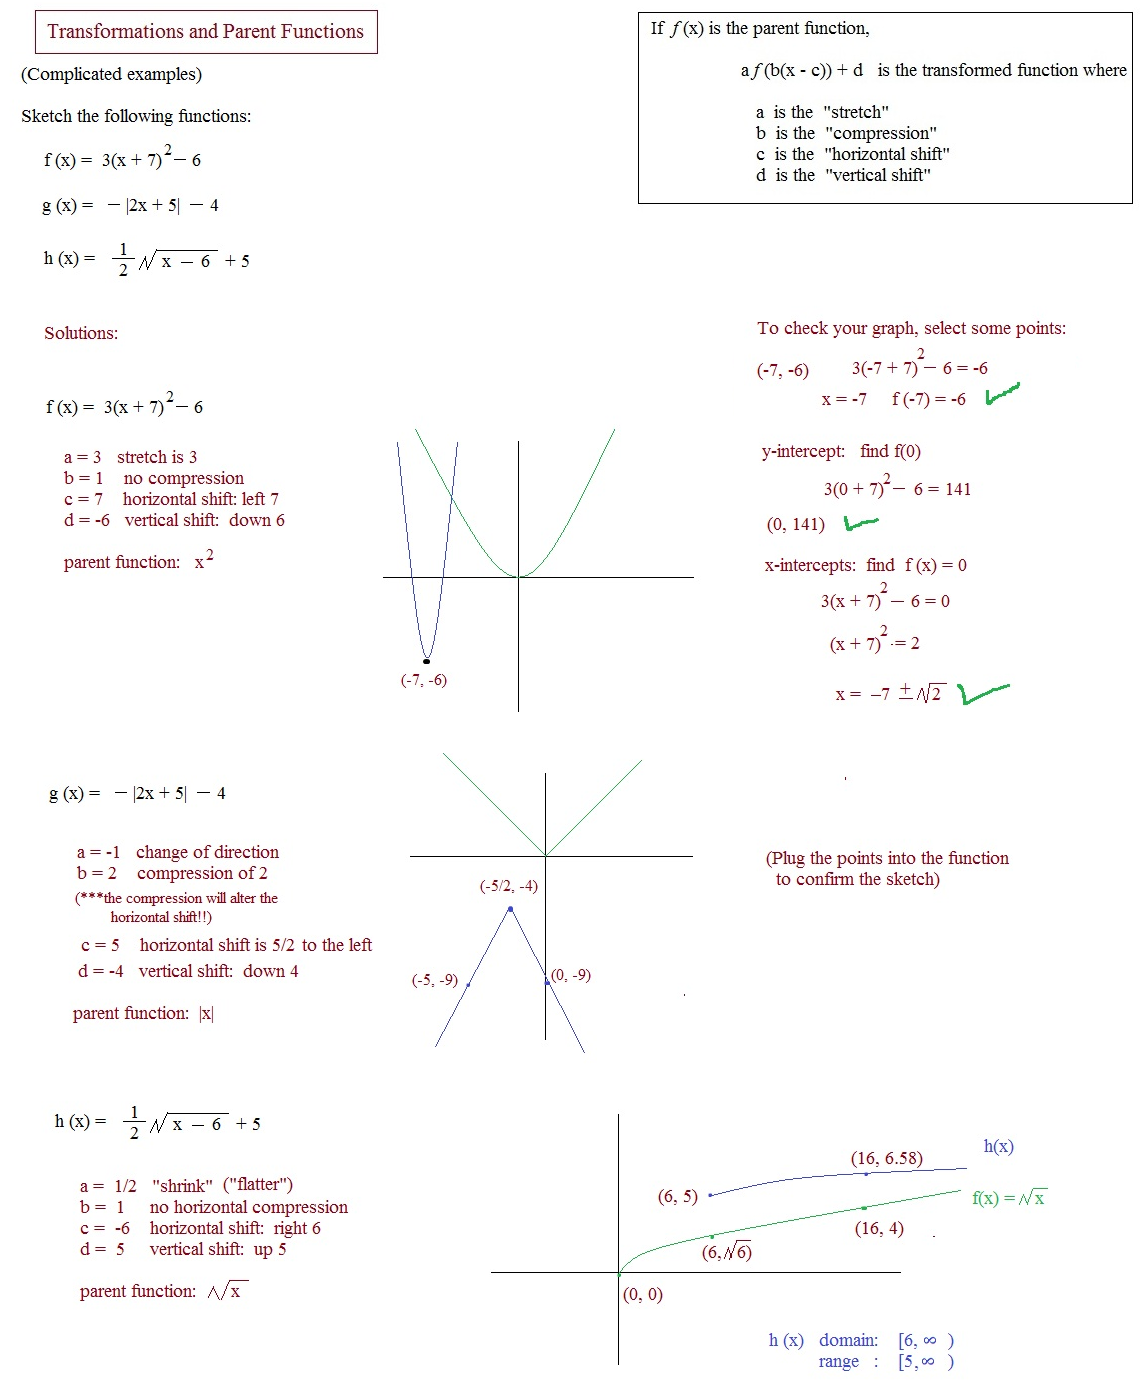 algebra 2 transformations worksheet abitlikethis. Black Bedroom Furniture Sets. Home Design Ideas